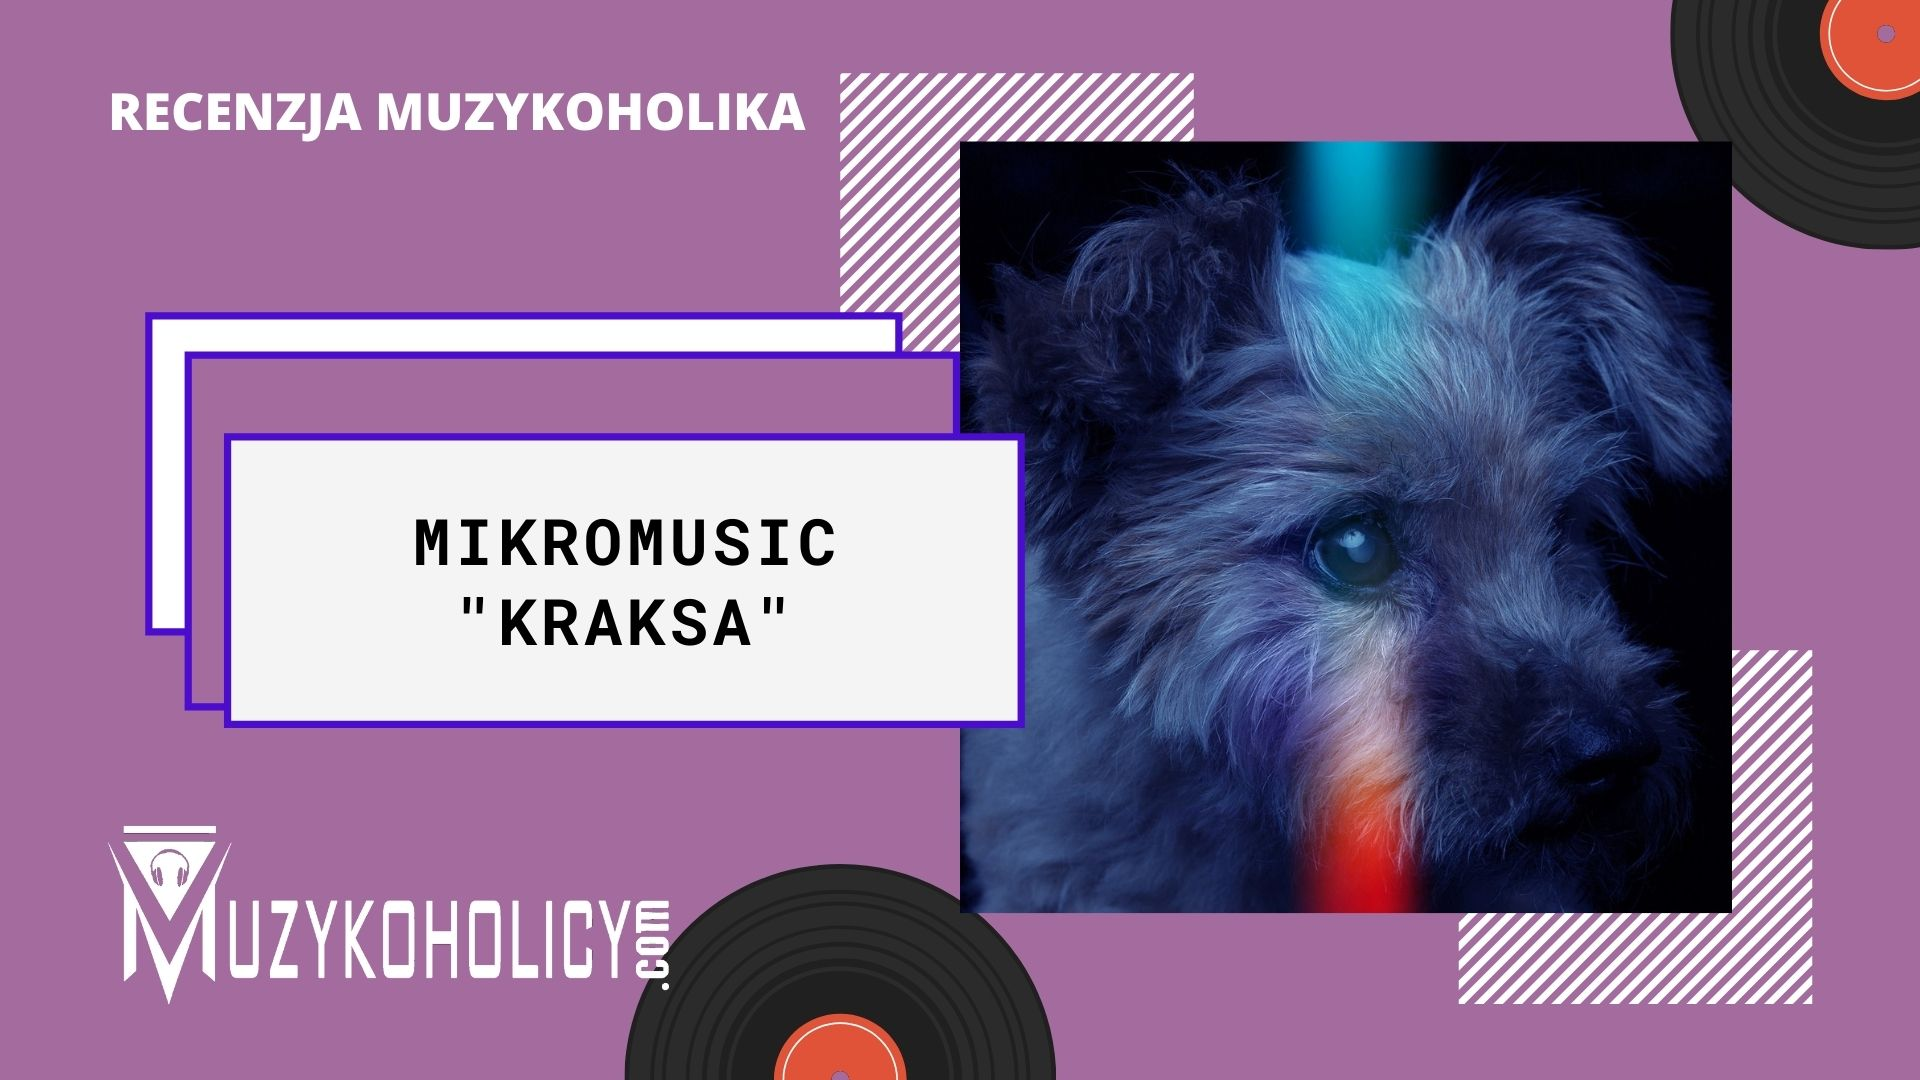 Nowy album Mikromusic